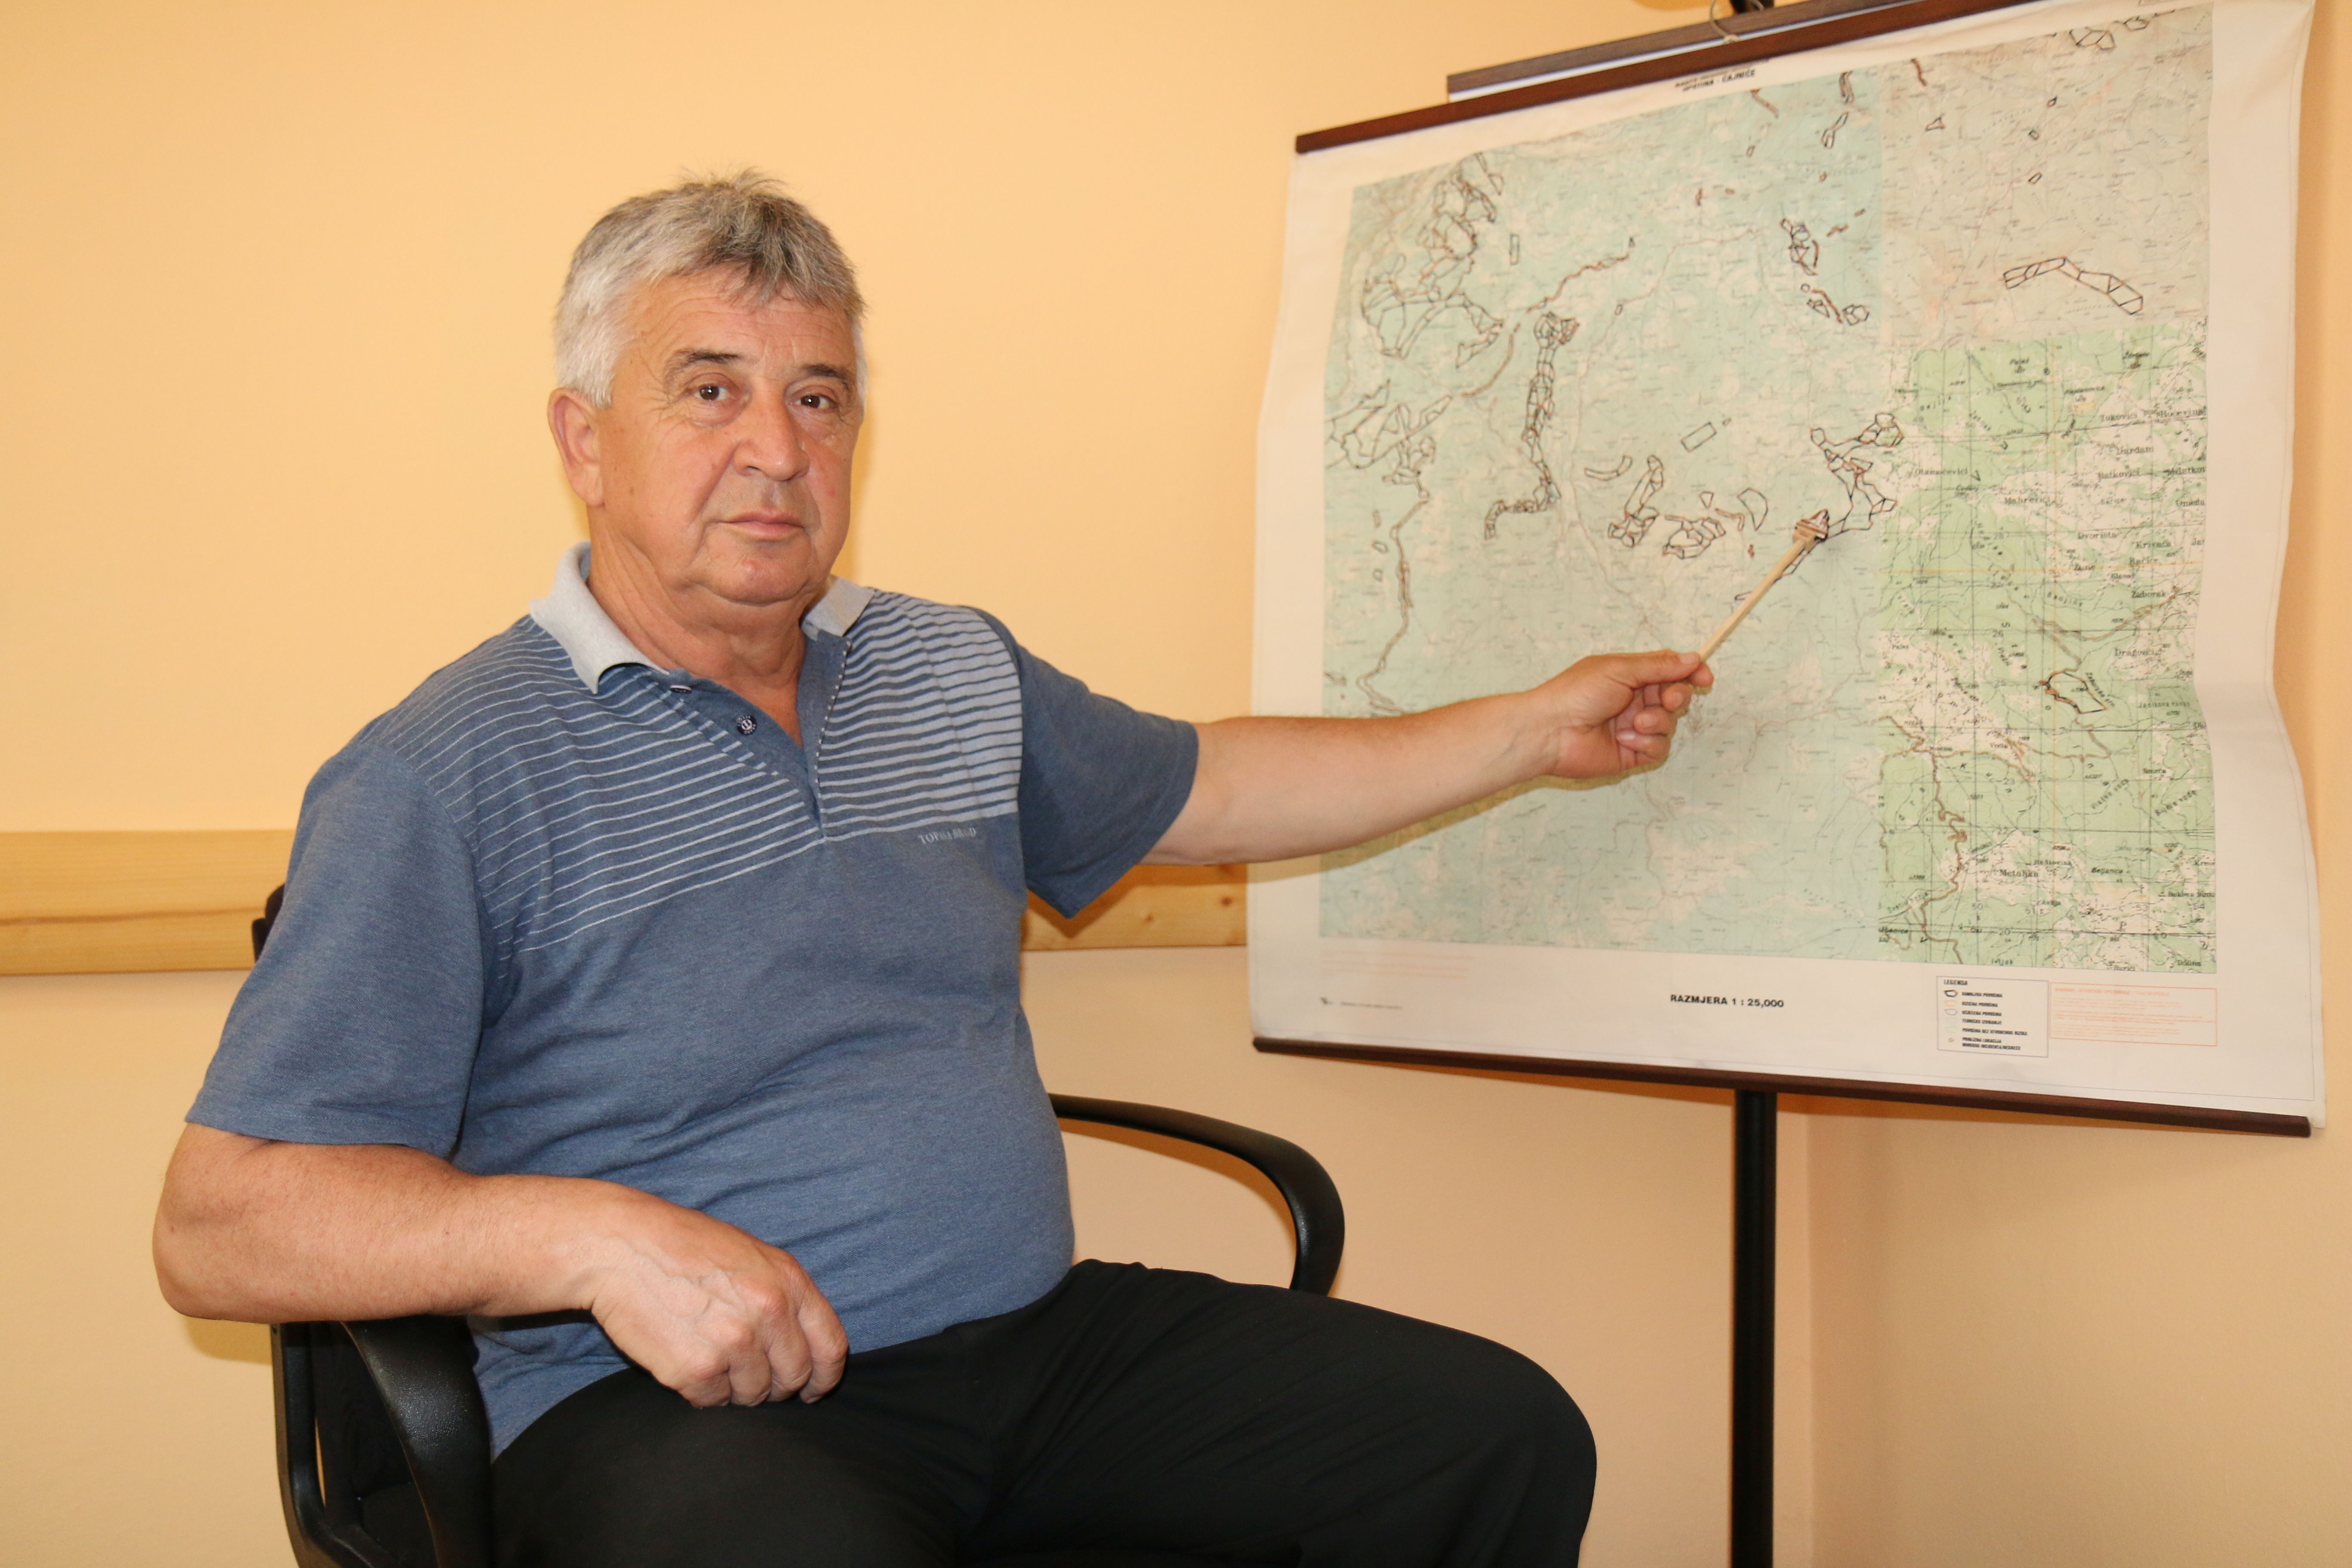 Mayor of Cajnice points at the mined areas on the map